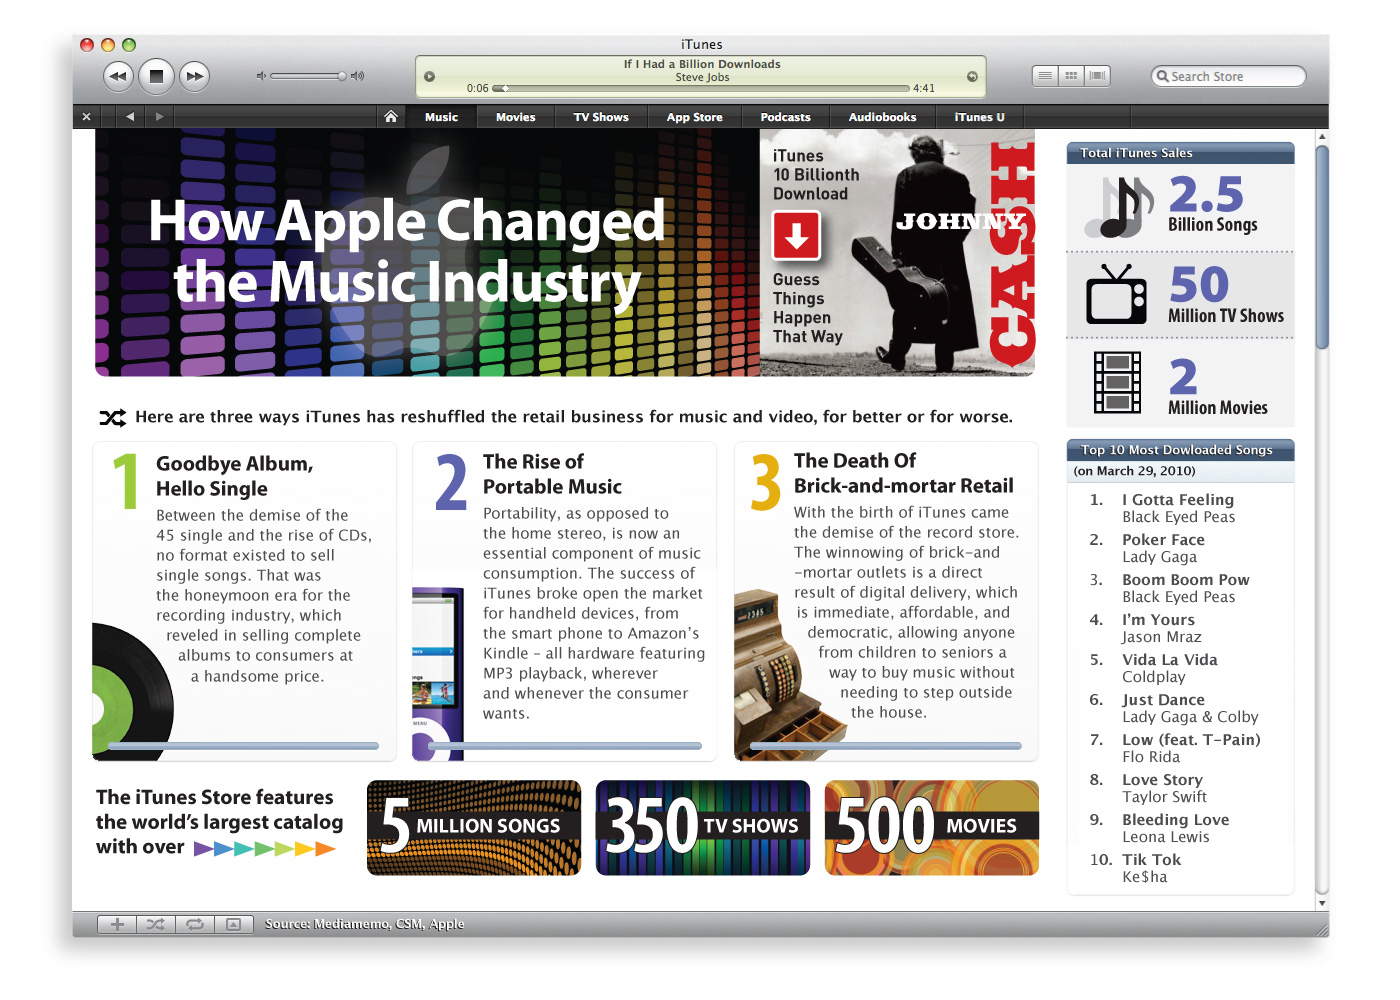 New Mac Online > Featured Articles > Apple's Reign Over the Music Industry